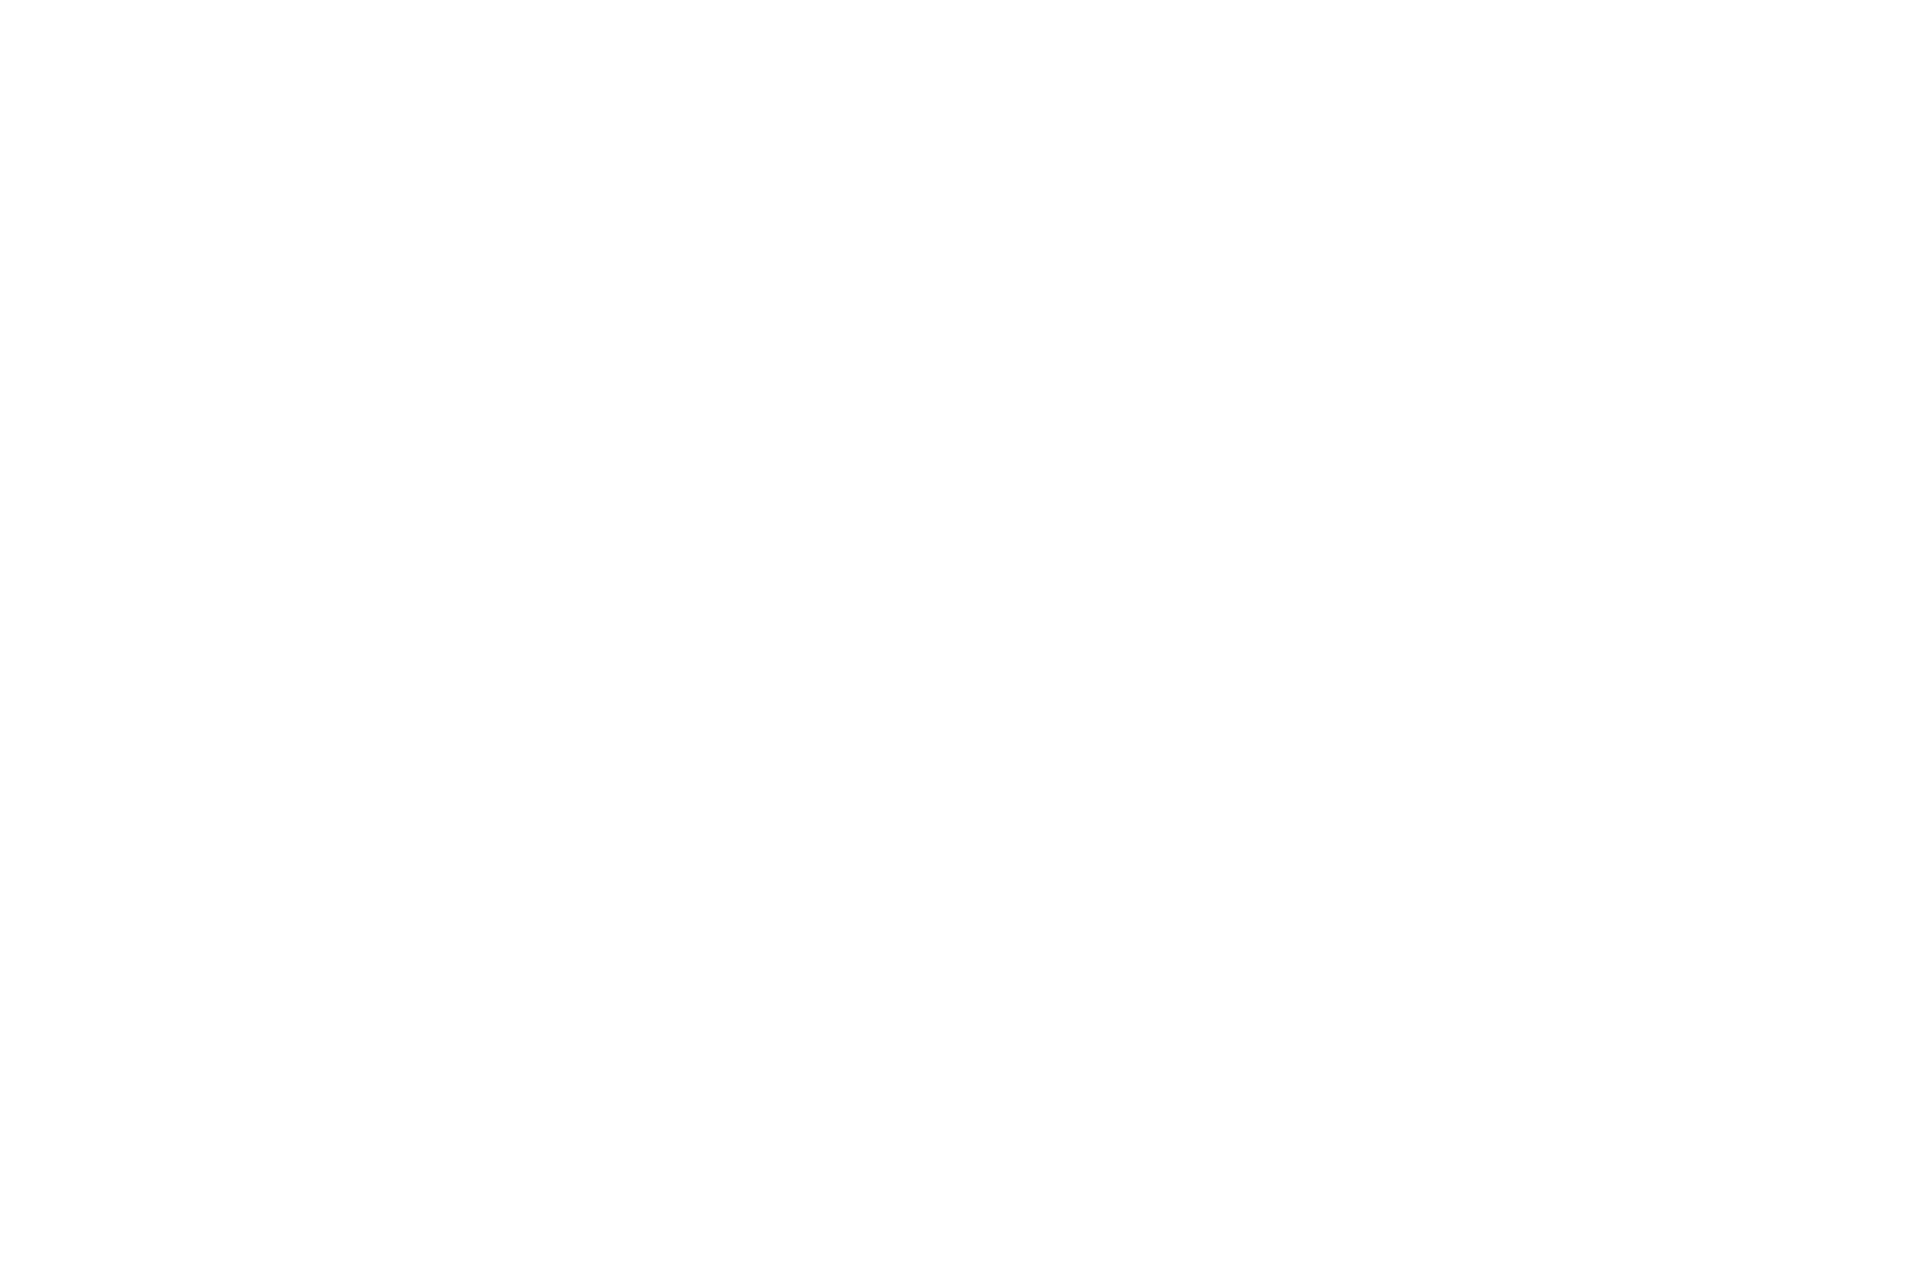 Harper BLVD Spa